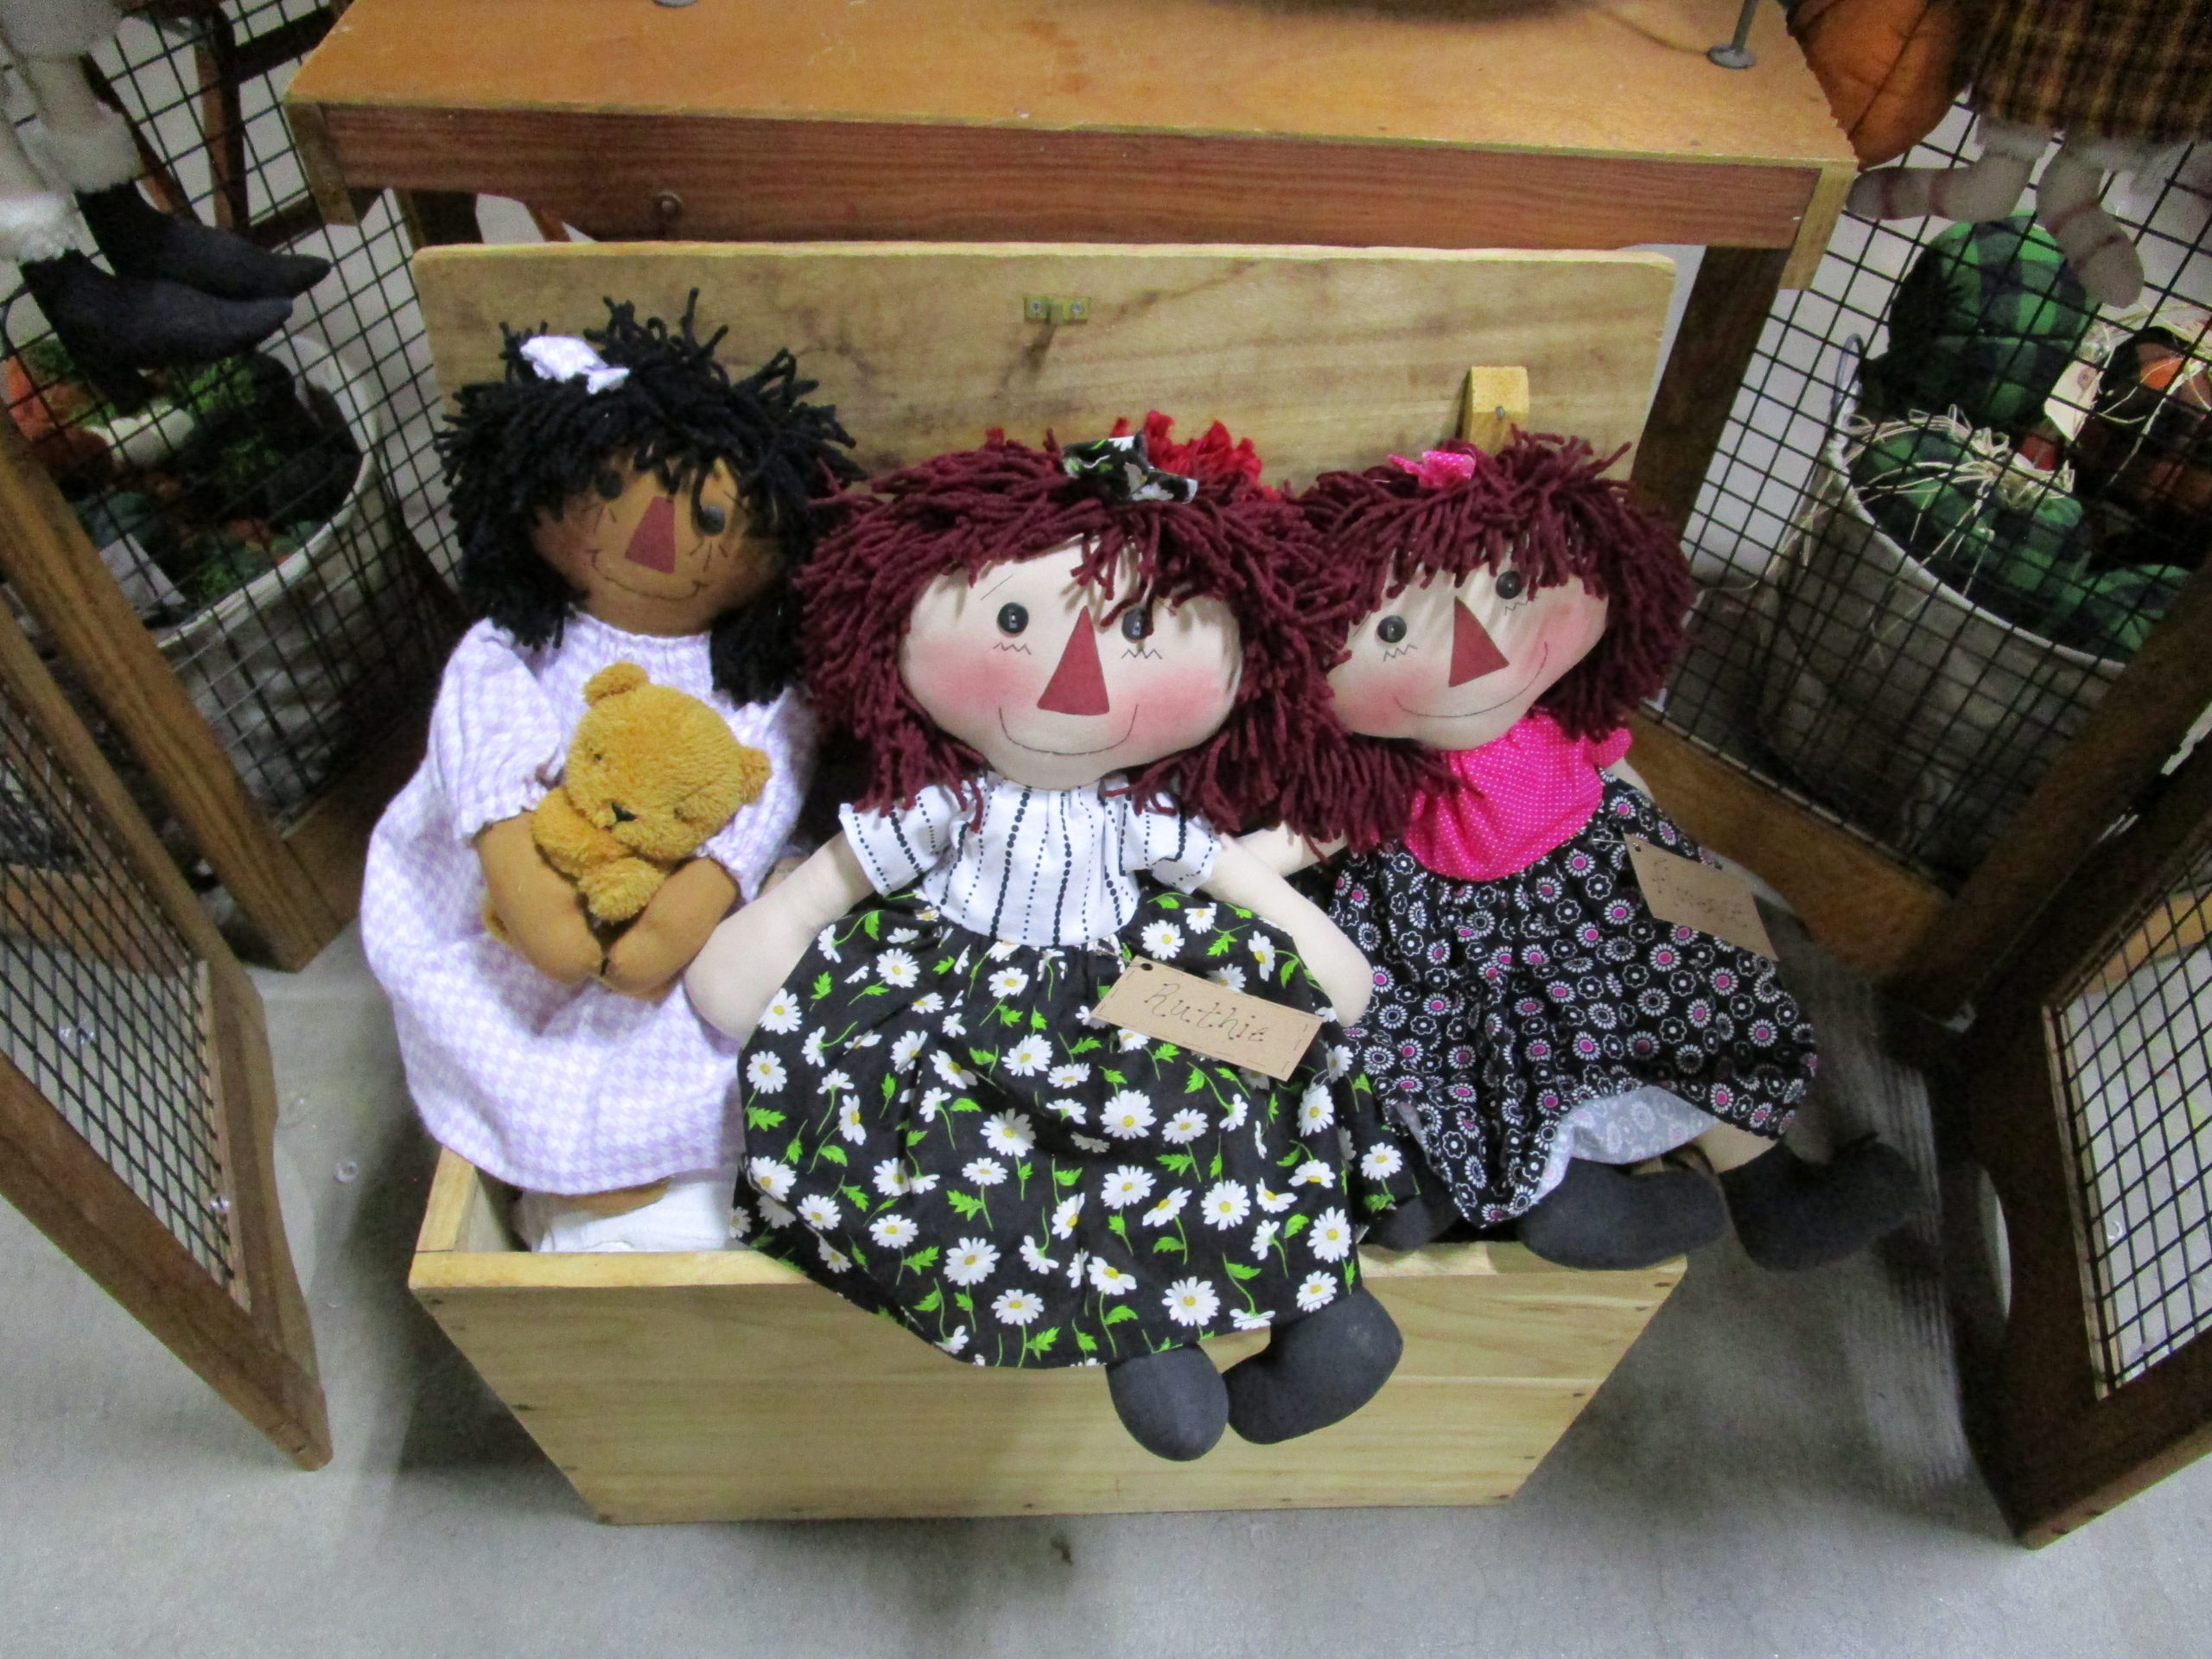 Handcrafted dolls at the Old Deerfield Crafts fair.